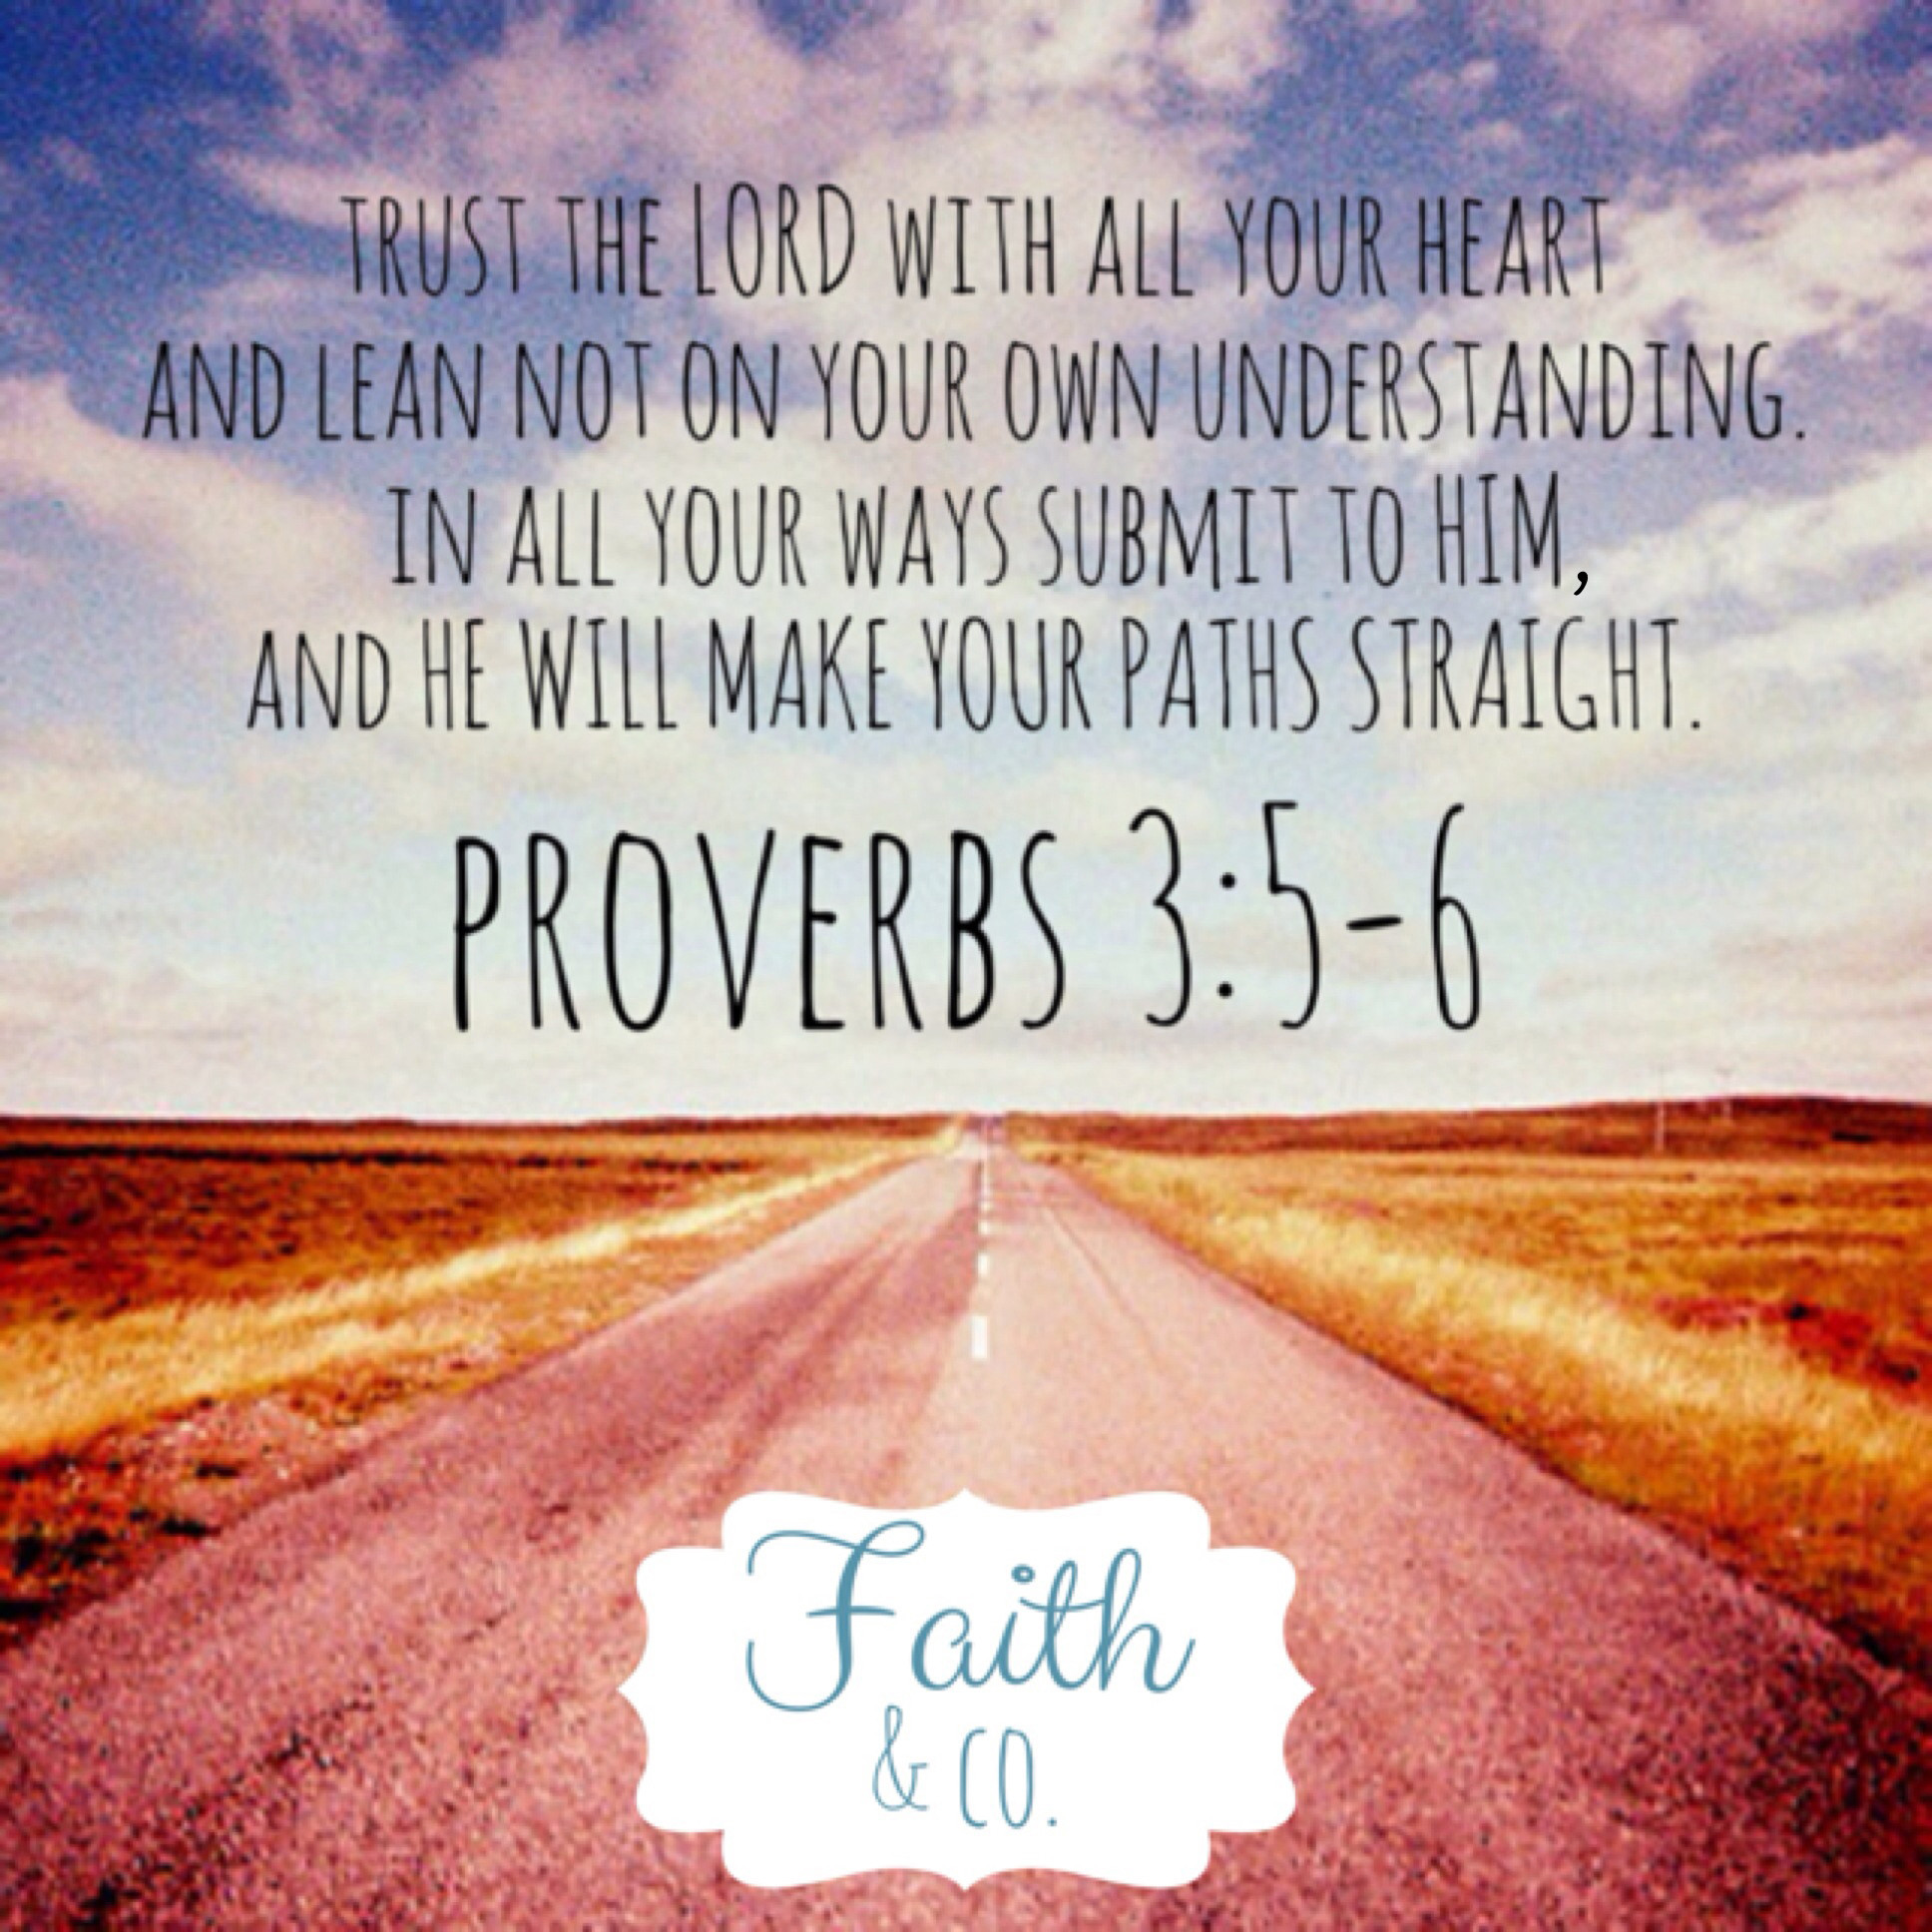 1936x1936 Proverbs 3.5 6 Bible Verse